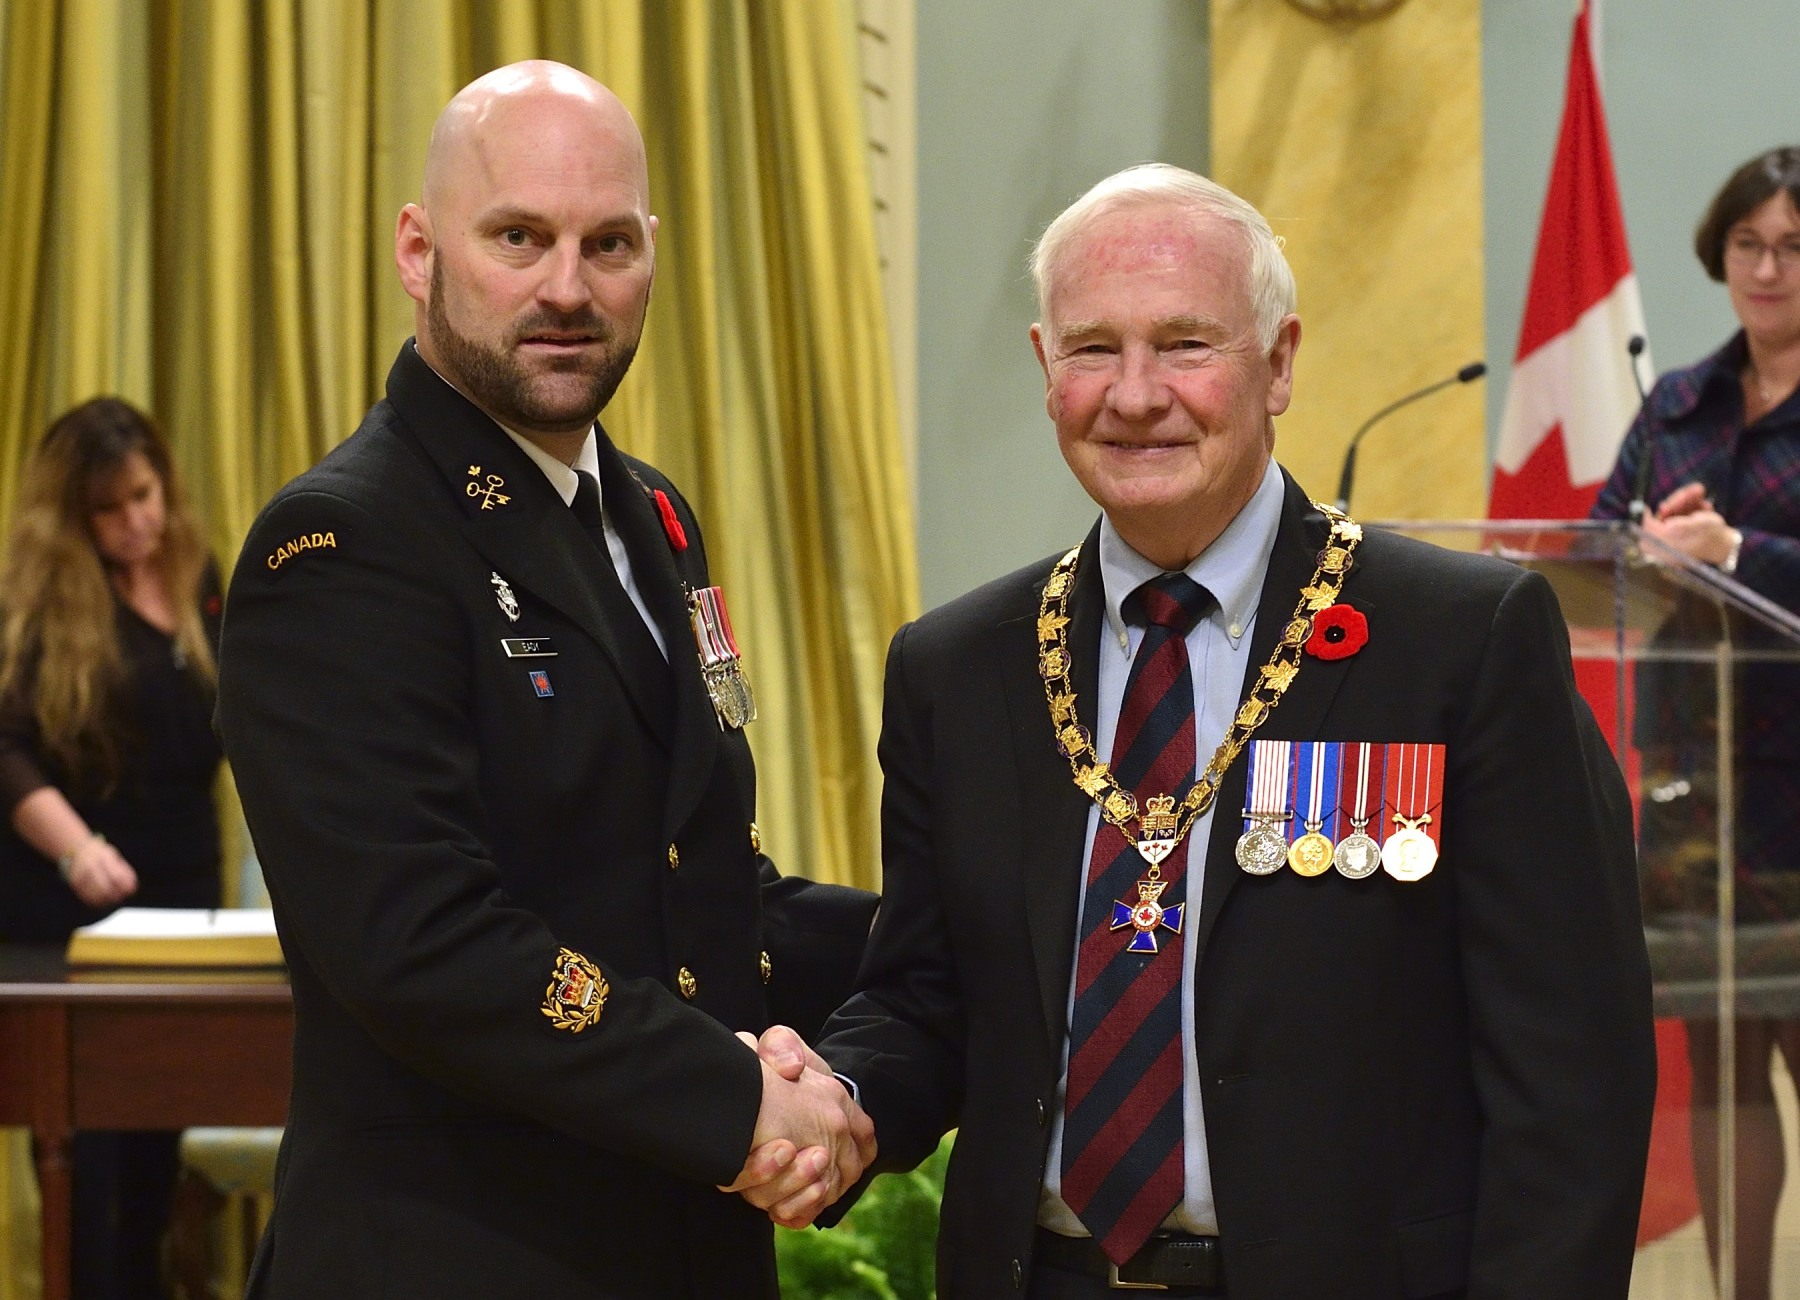 His Excellency presented the Order of Military Merit at the Member level (M.M.M.) to Chief Petty Officer 2nd Class Barry Eady, M.M.M., C.D., Her Majesty's Canadian Ship St. John's, Halifax, N.S.